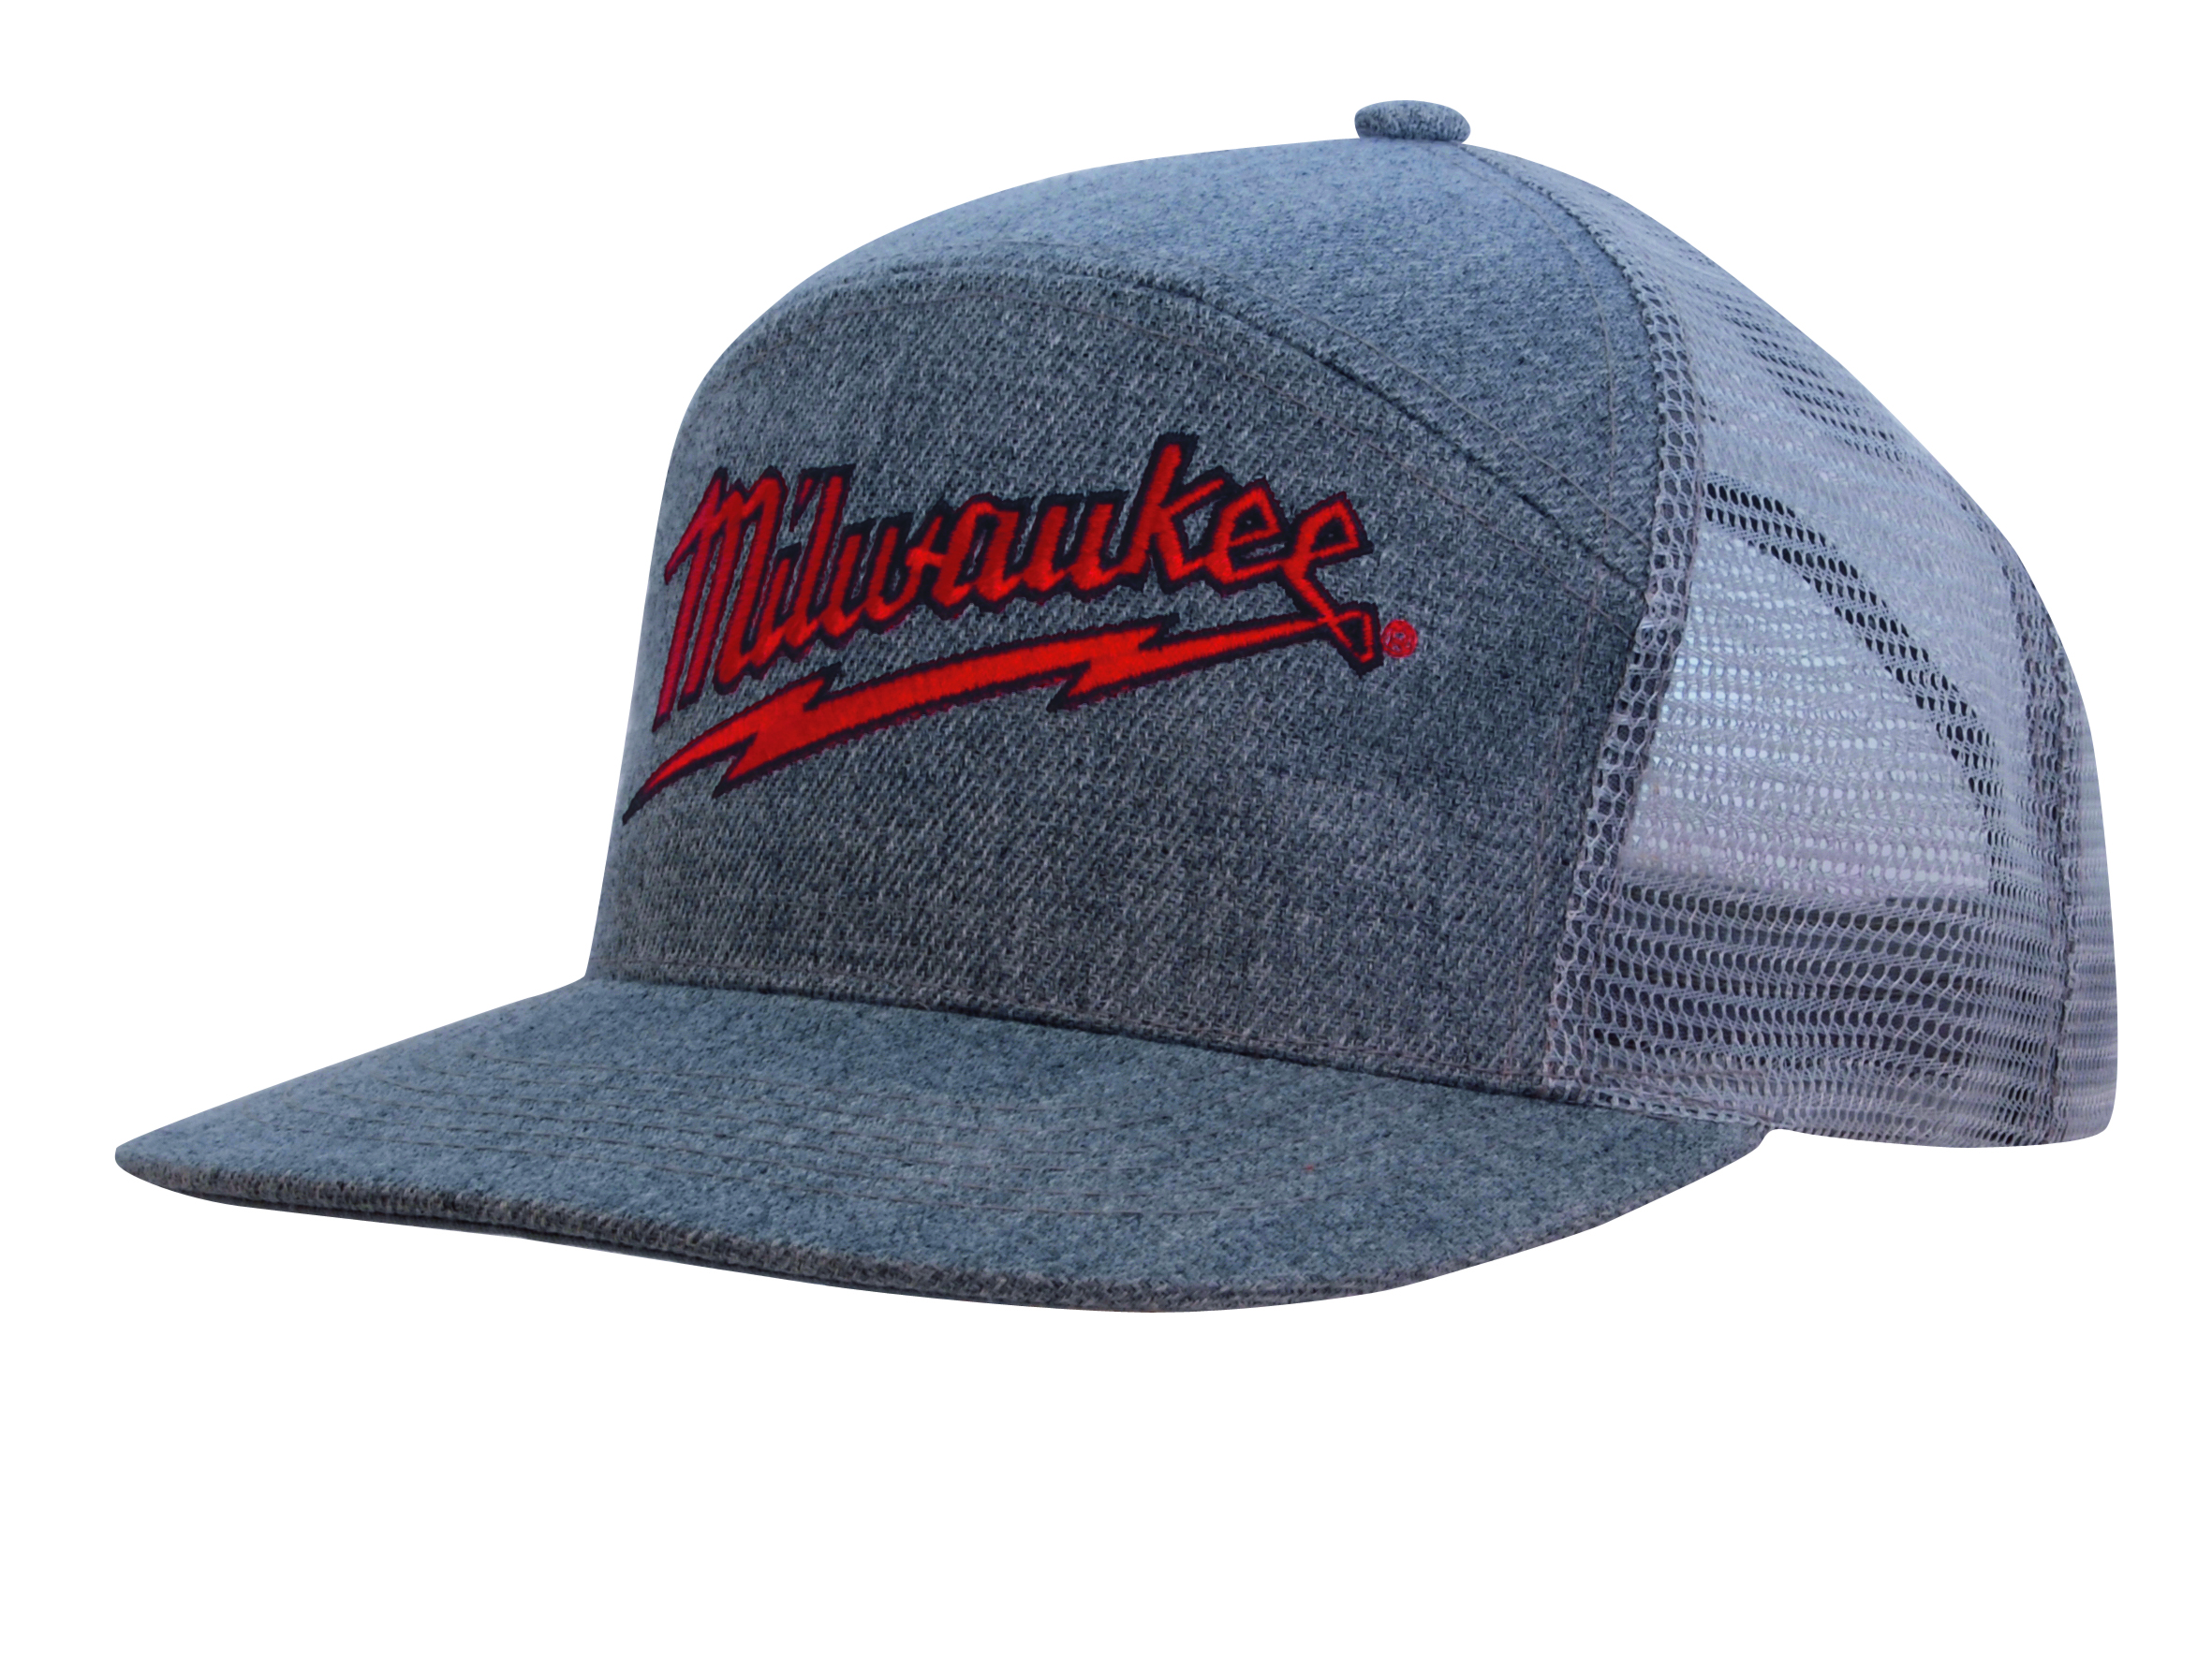 Grey Marle Flannel Cap with Mesh Back